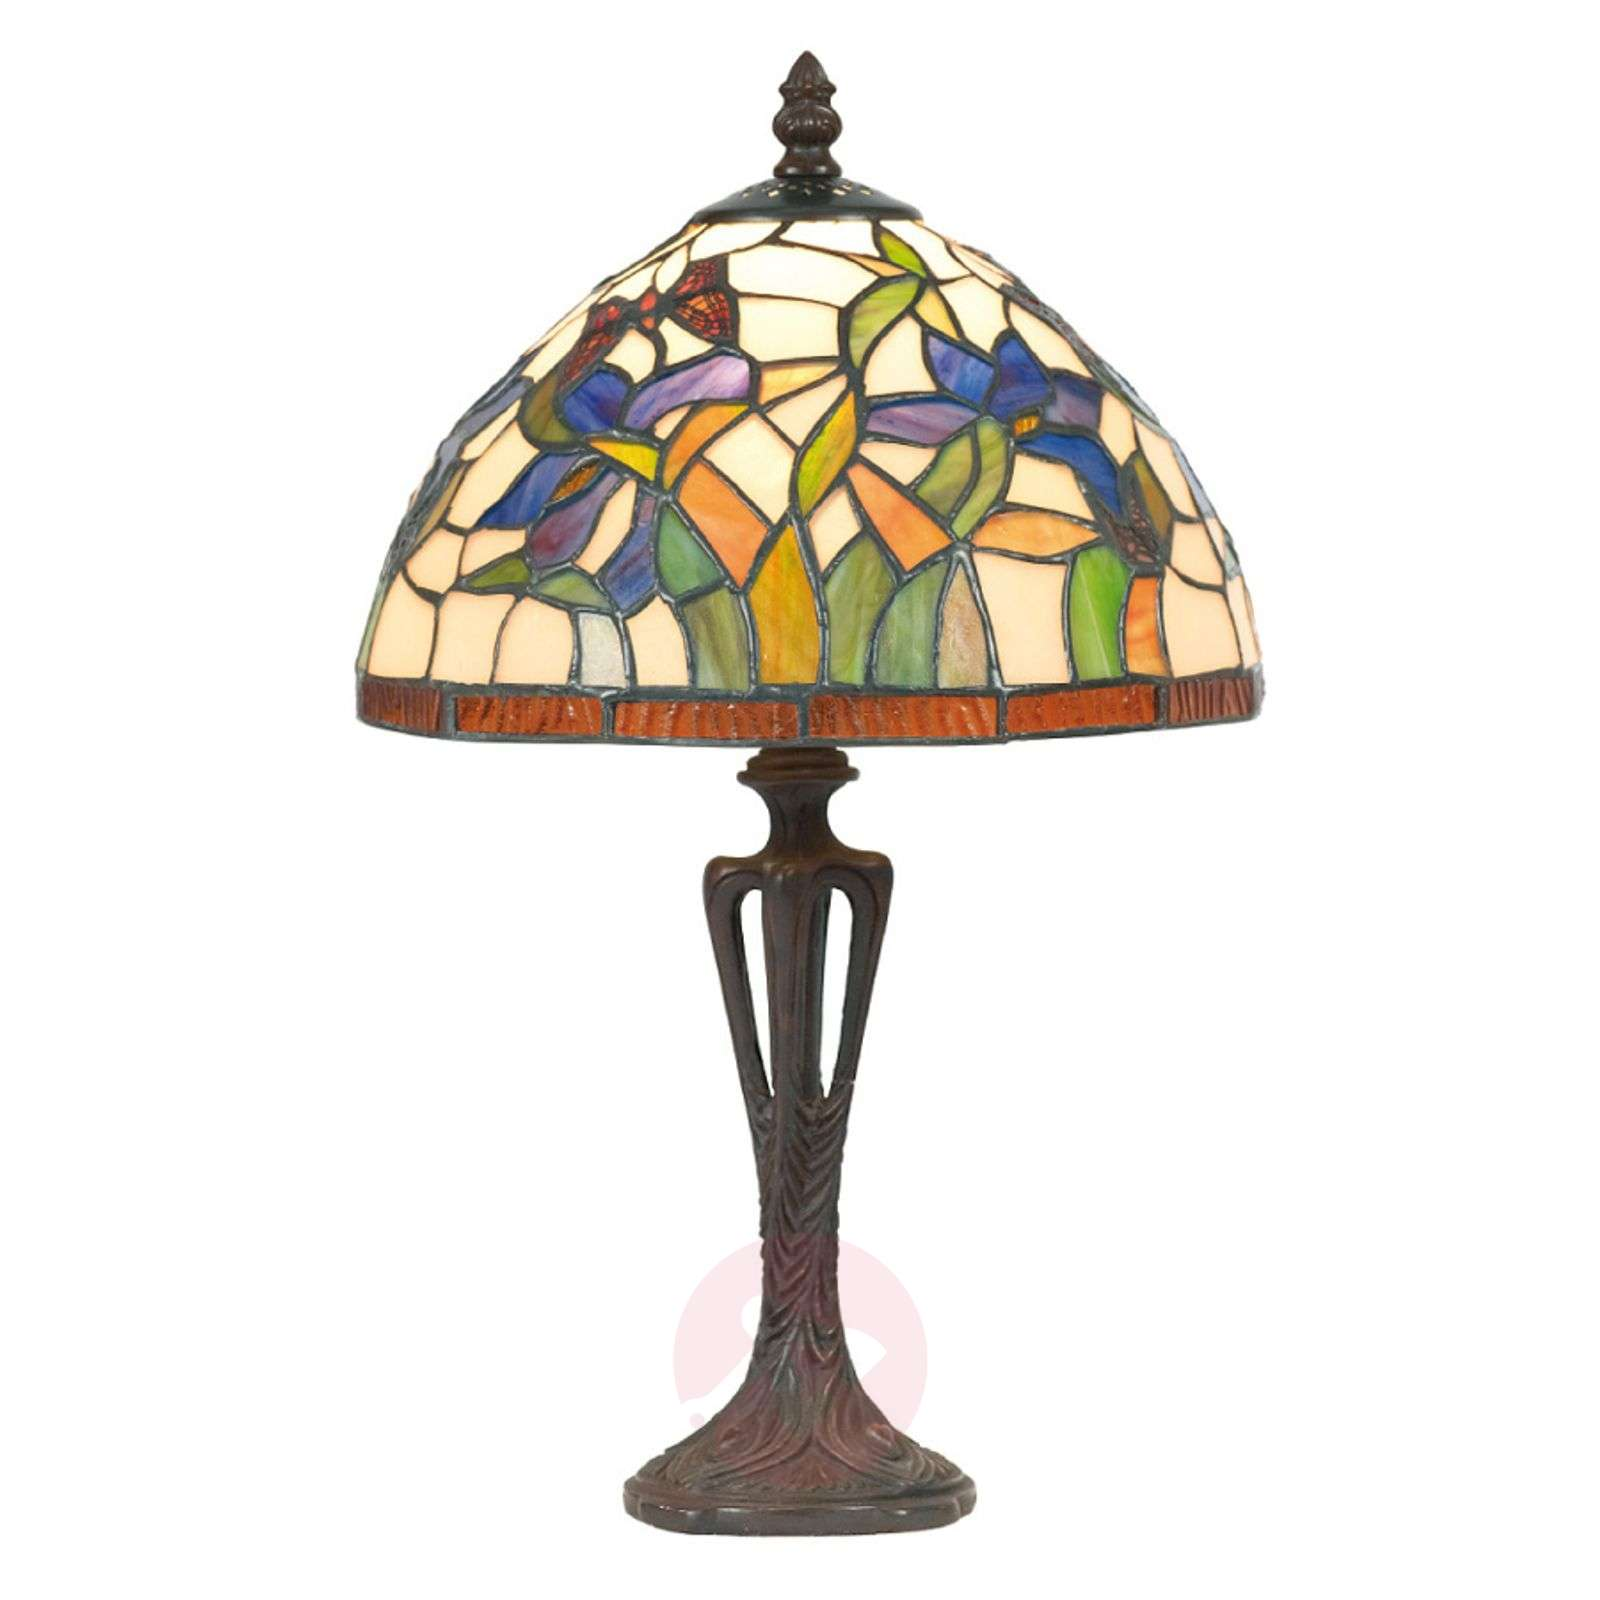 ELANDA table lamp in the Tiffany style-1032162-01